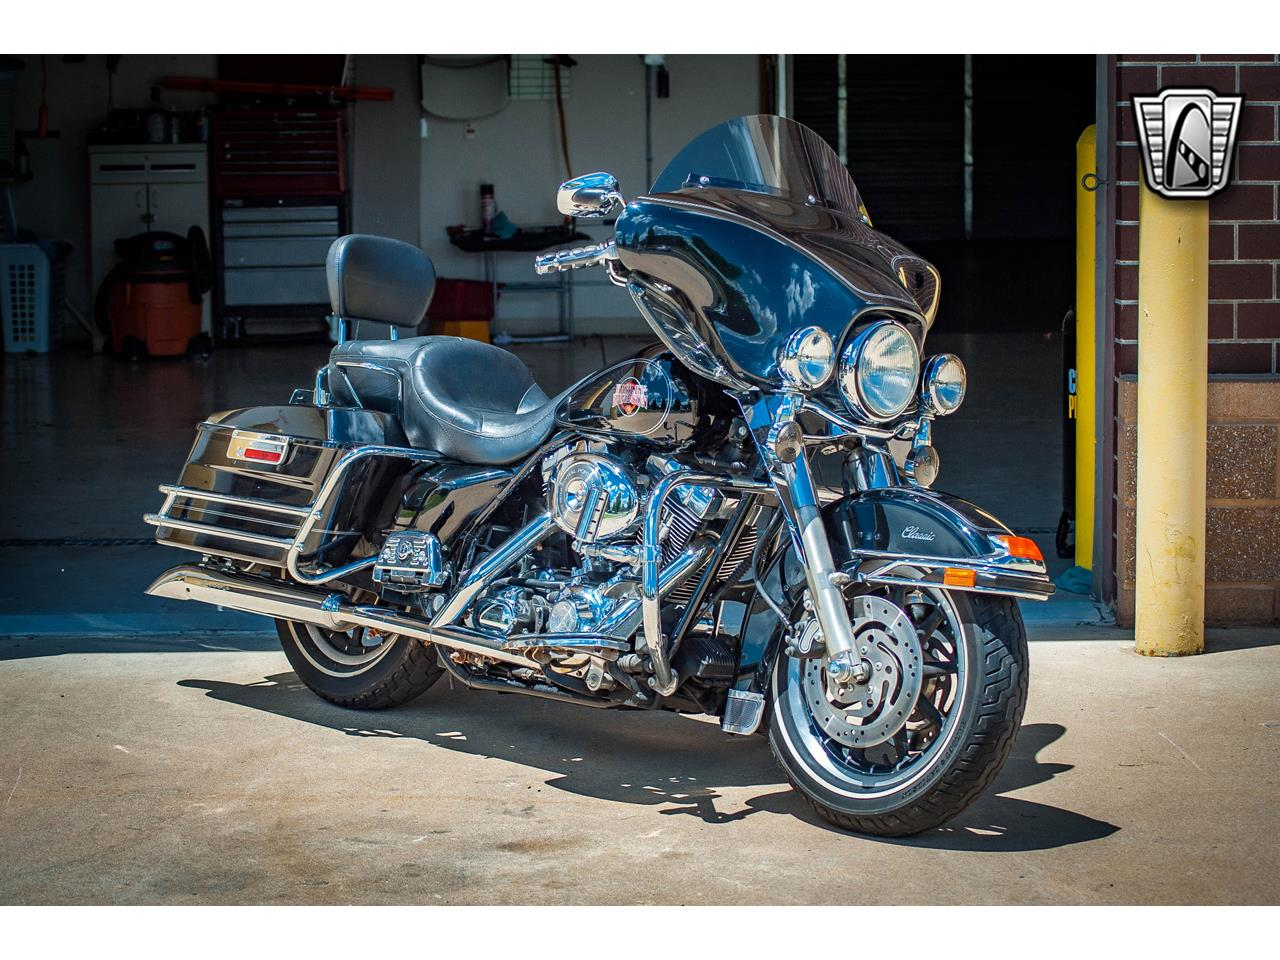 2004 Harley-Davidson Motorcycle for sale in O'Fallon, IL – photo 53